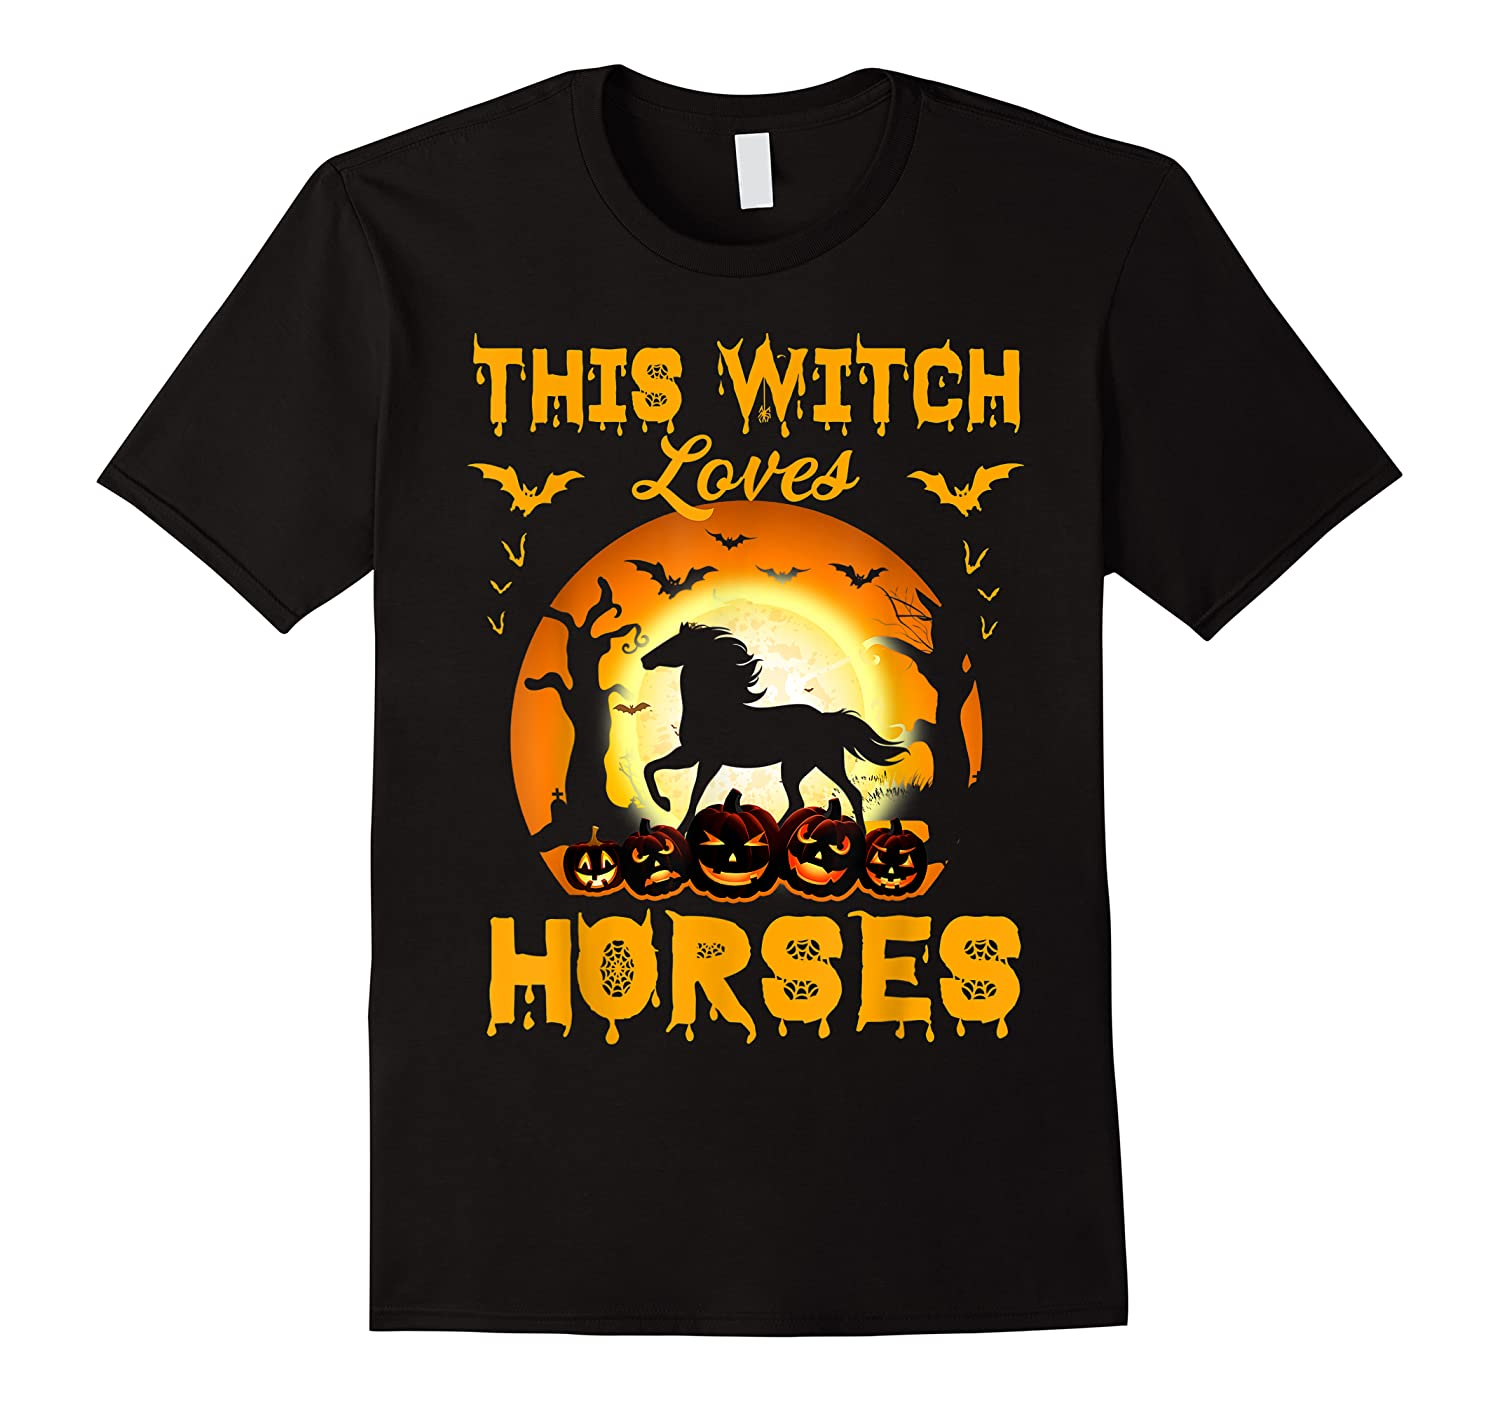 This Witch Loves Horses T-shirt Halloween Cosplay